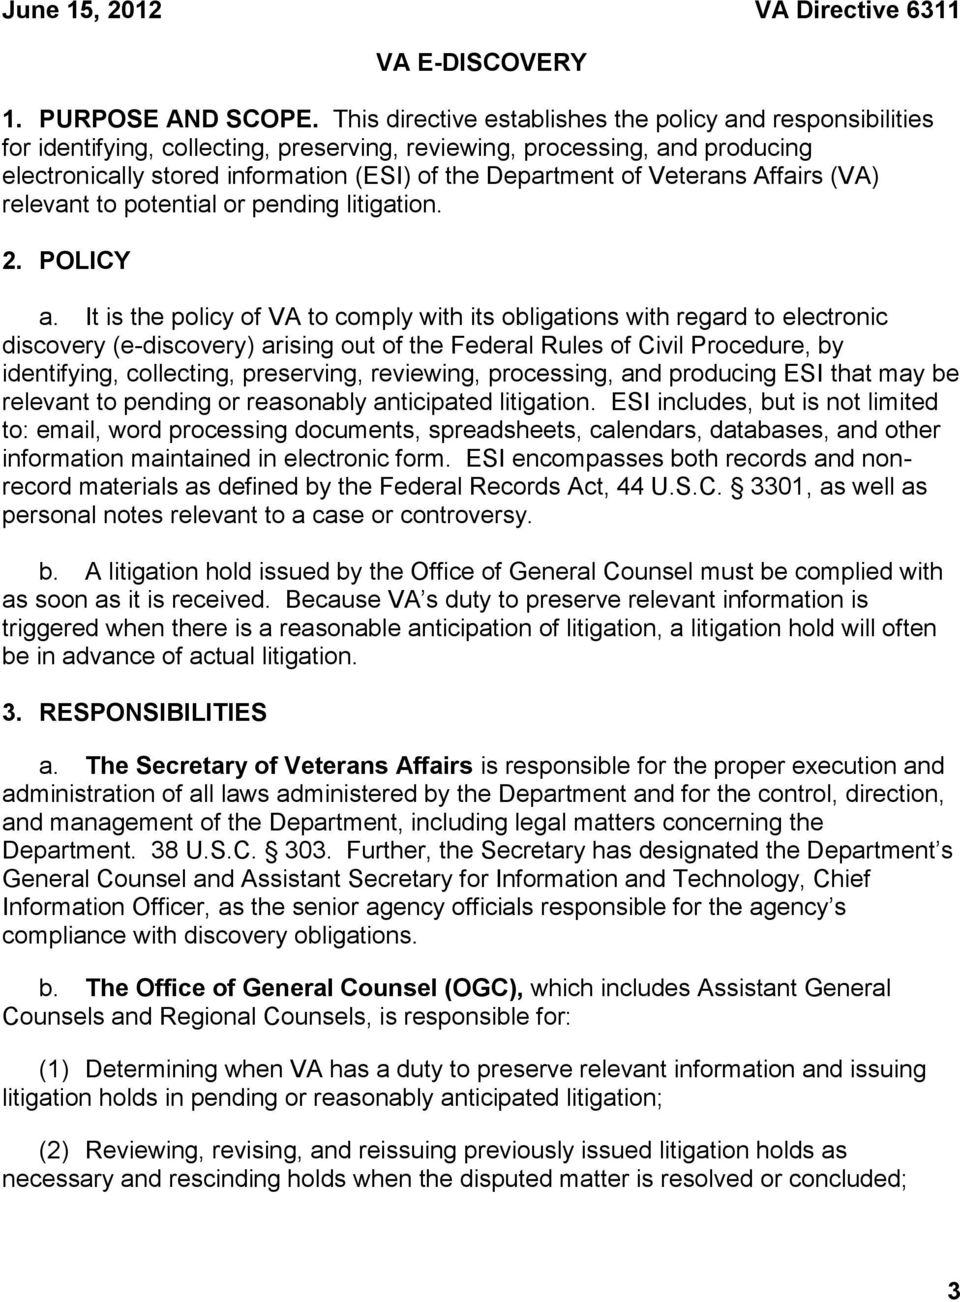 Veterans Affairs (VA) relevant to potential or pending litigation. 2. POLICY a.